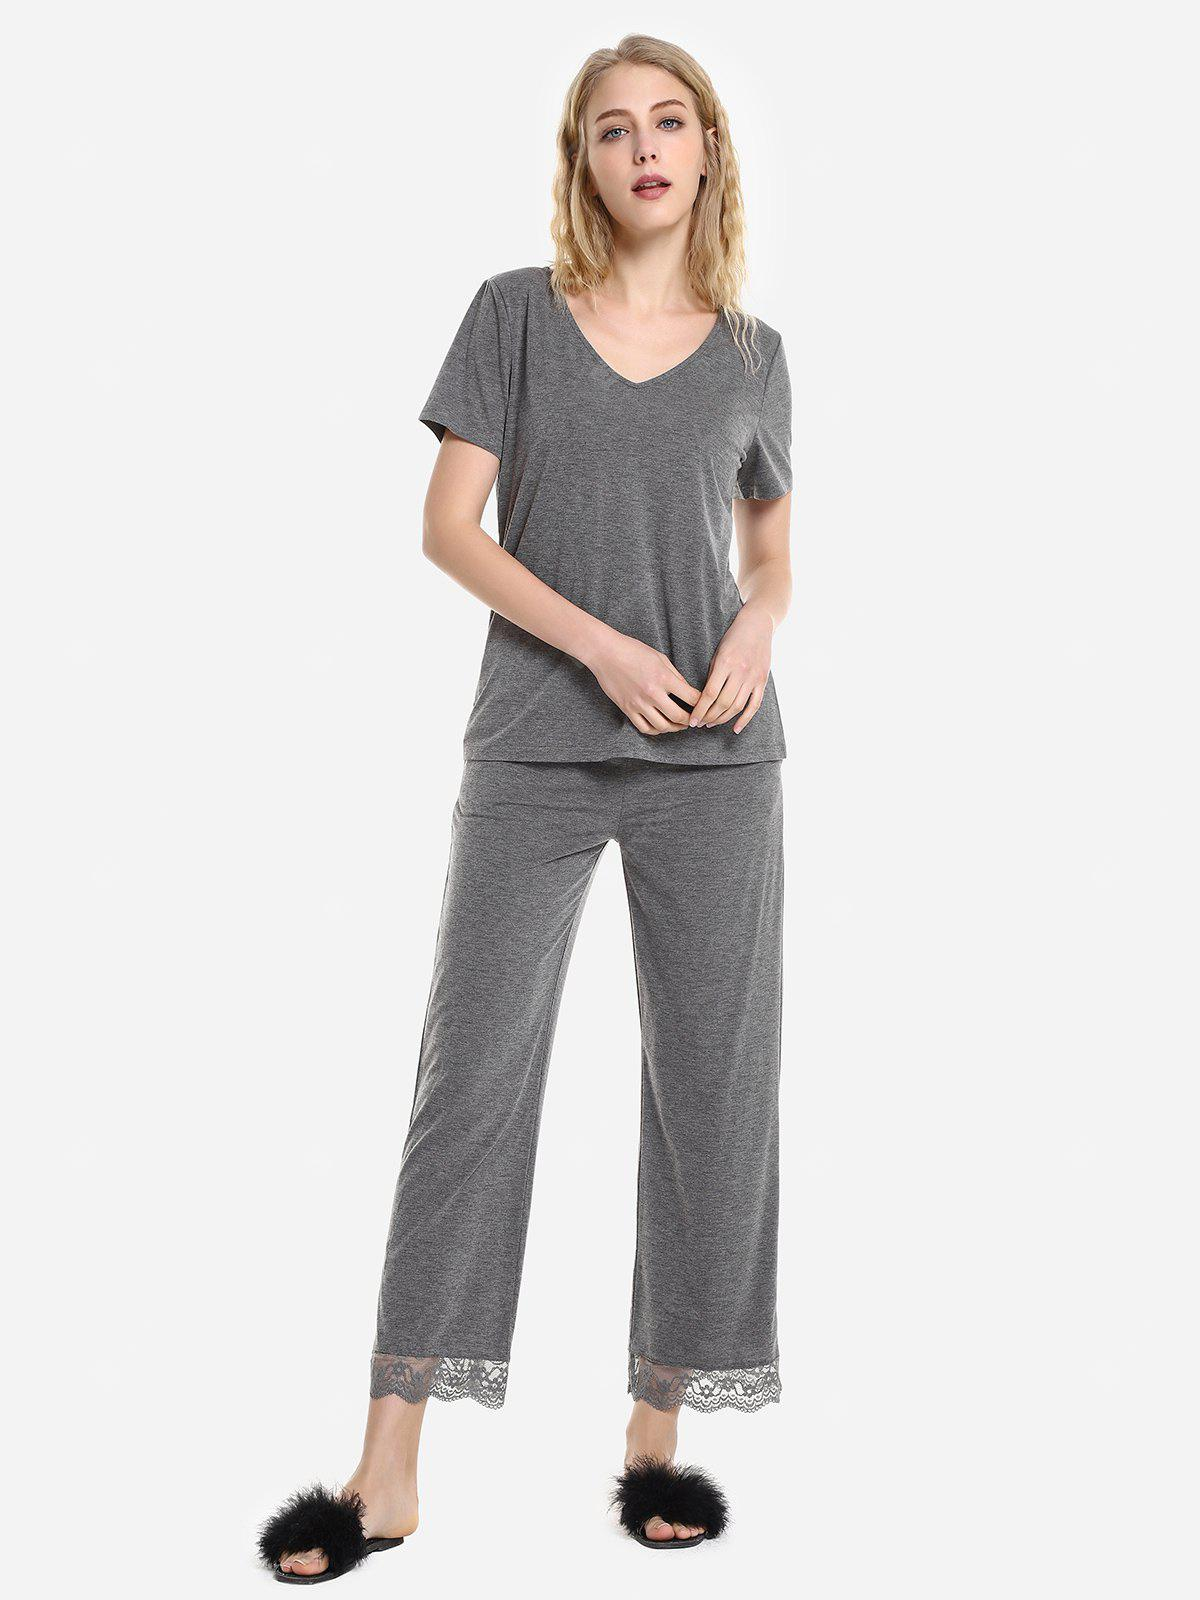 V Neck Sleepwear Short Sleeve Pajama Set